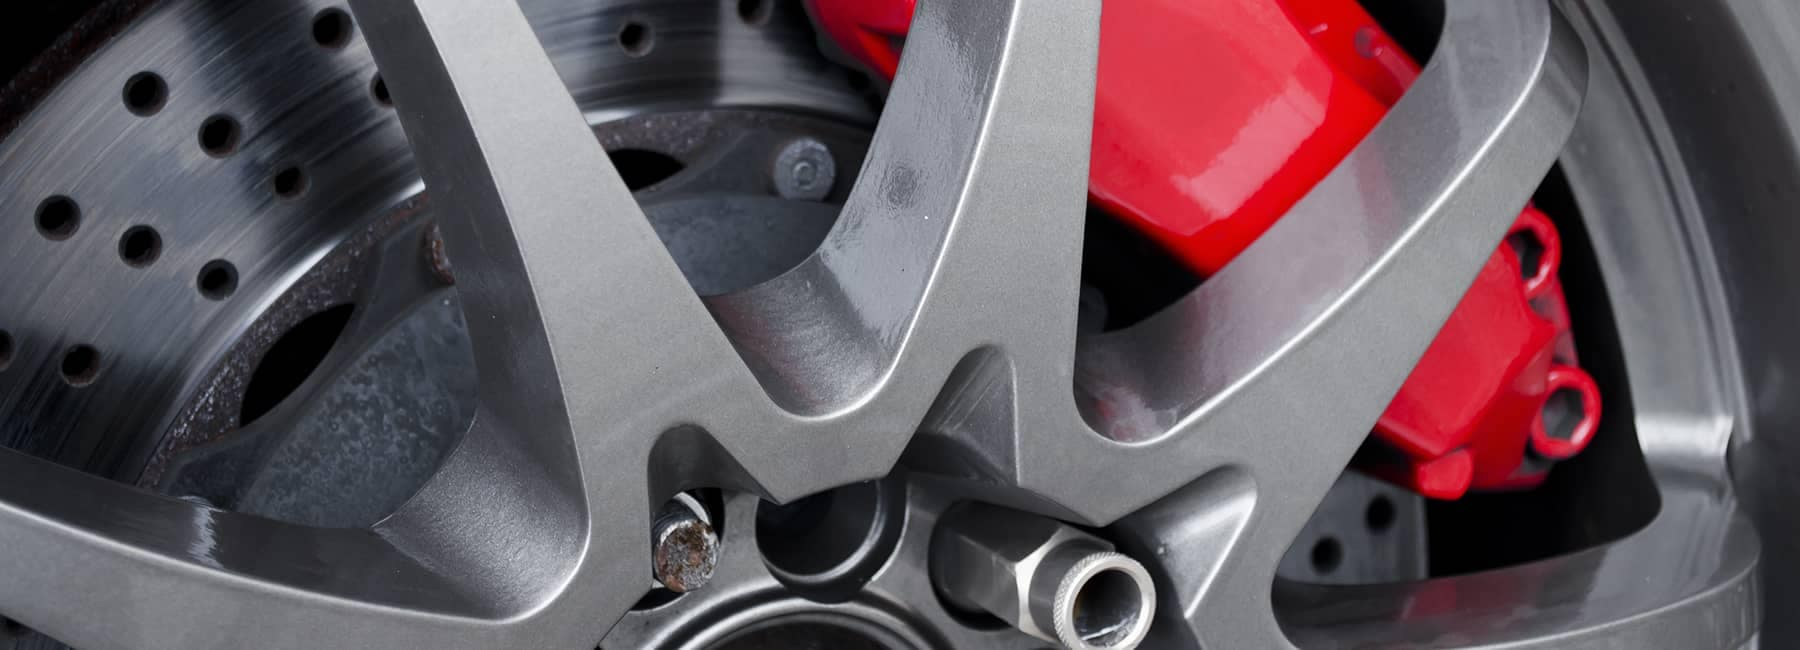 close-up-of-rims-and-brake-calipers-on-a-vehicle